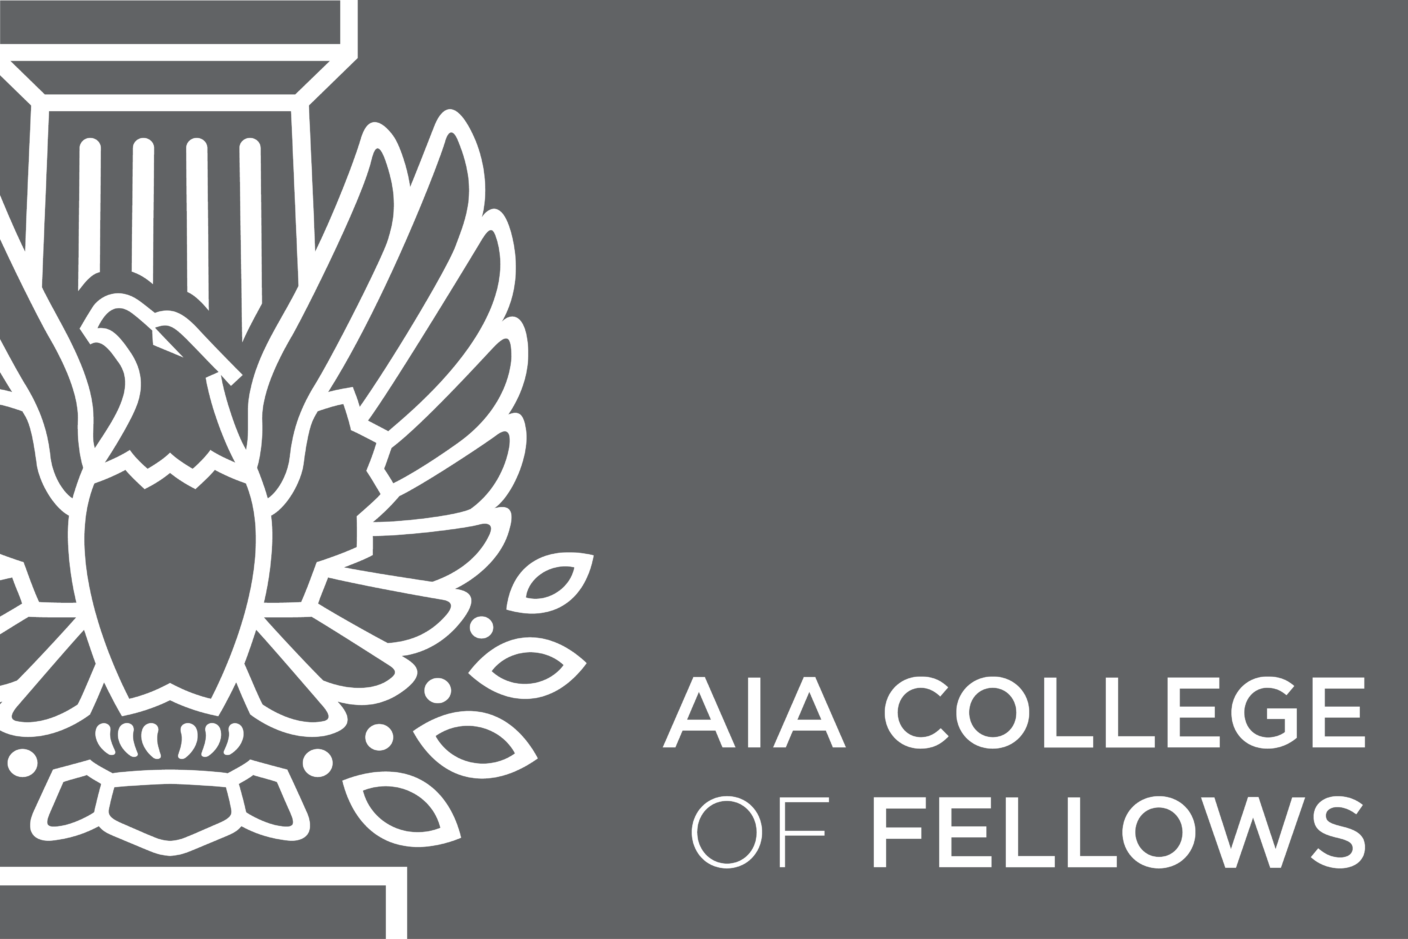 The 2016 Jury of Fellows from the American Institute of Architects elevated four AIA Seattle members to its prestigious College of Fellows, an honor awarded to members who have made significant national contributions to the profession.